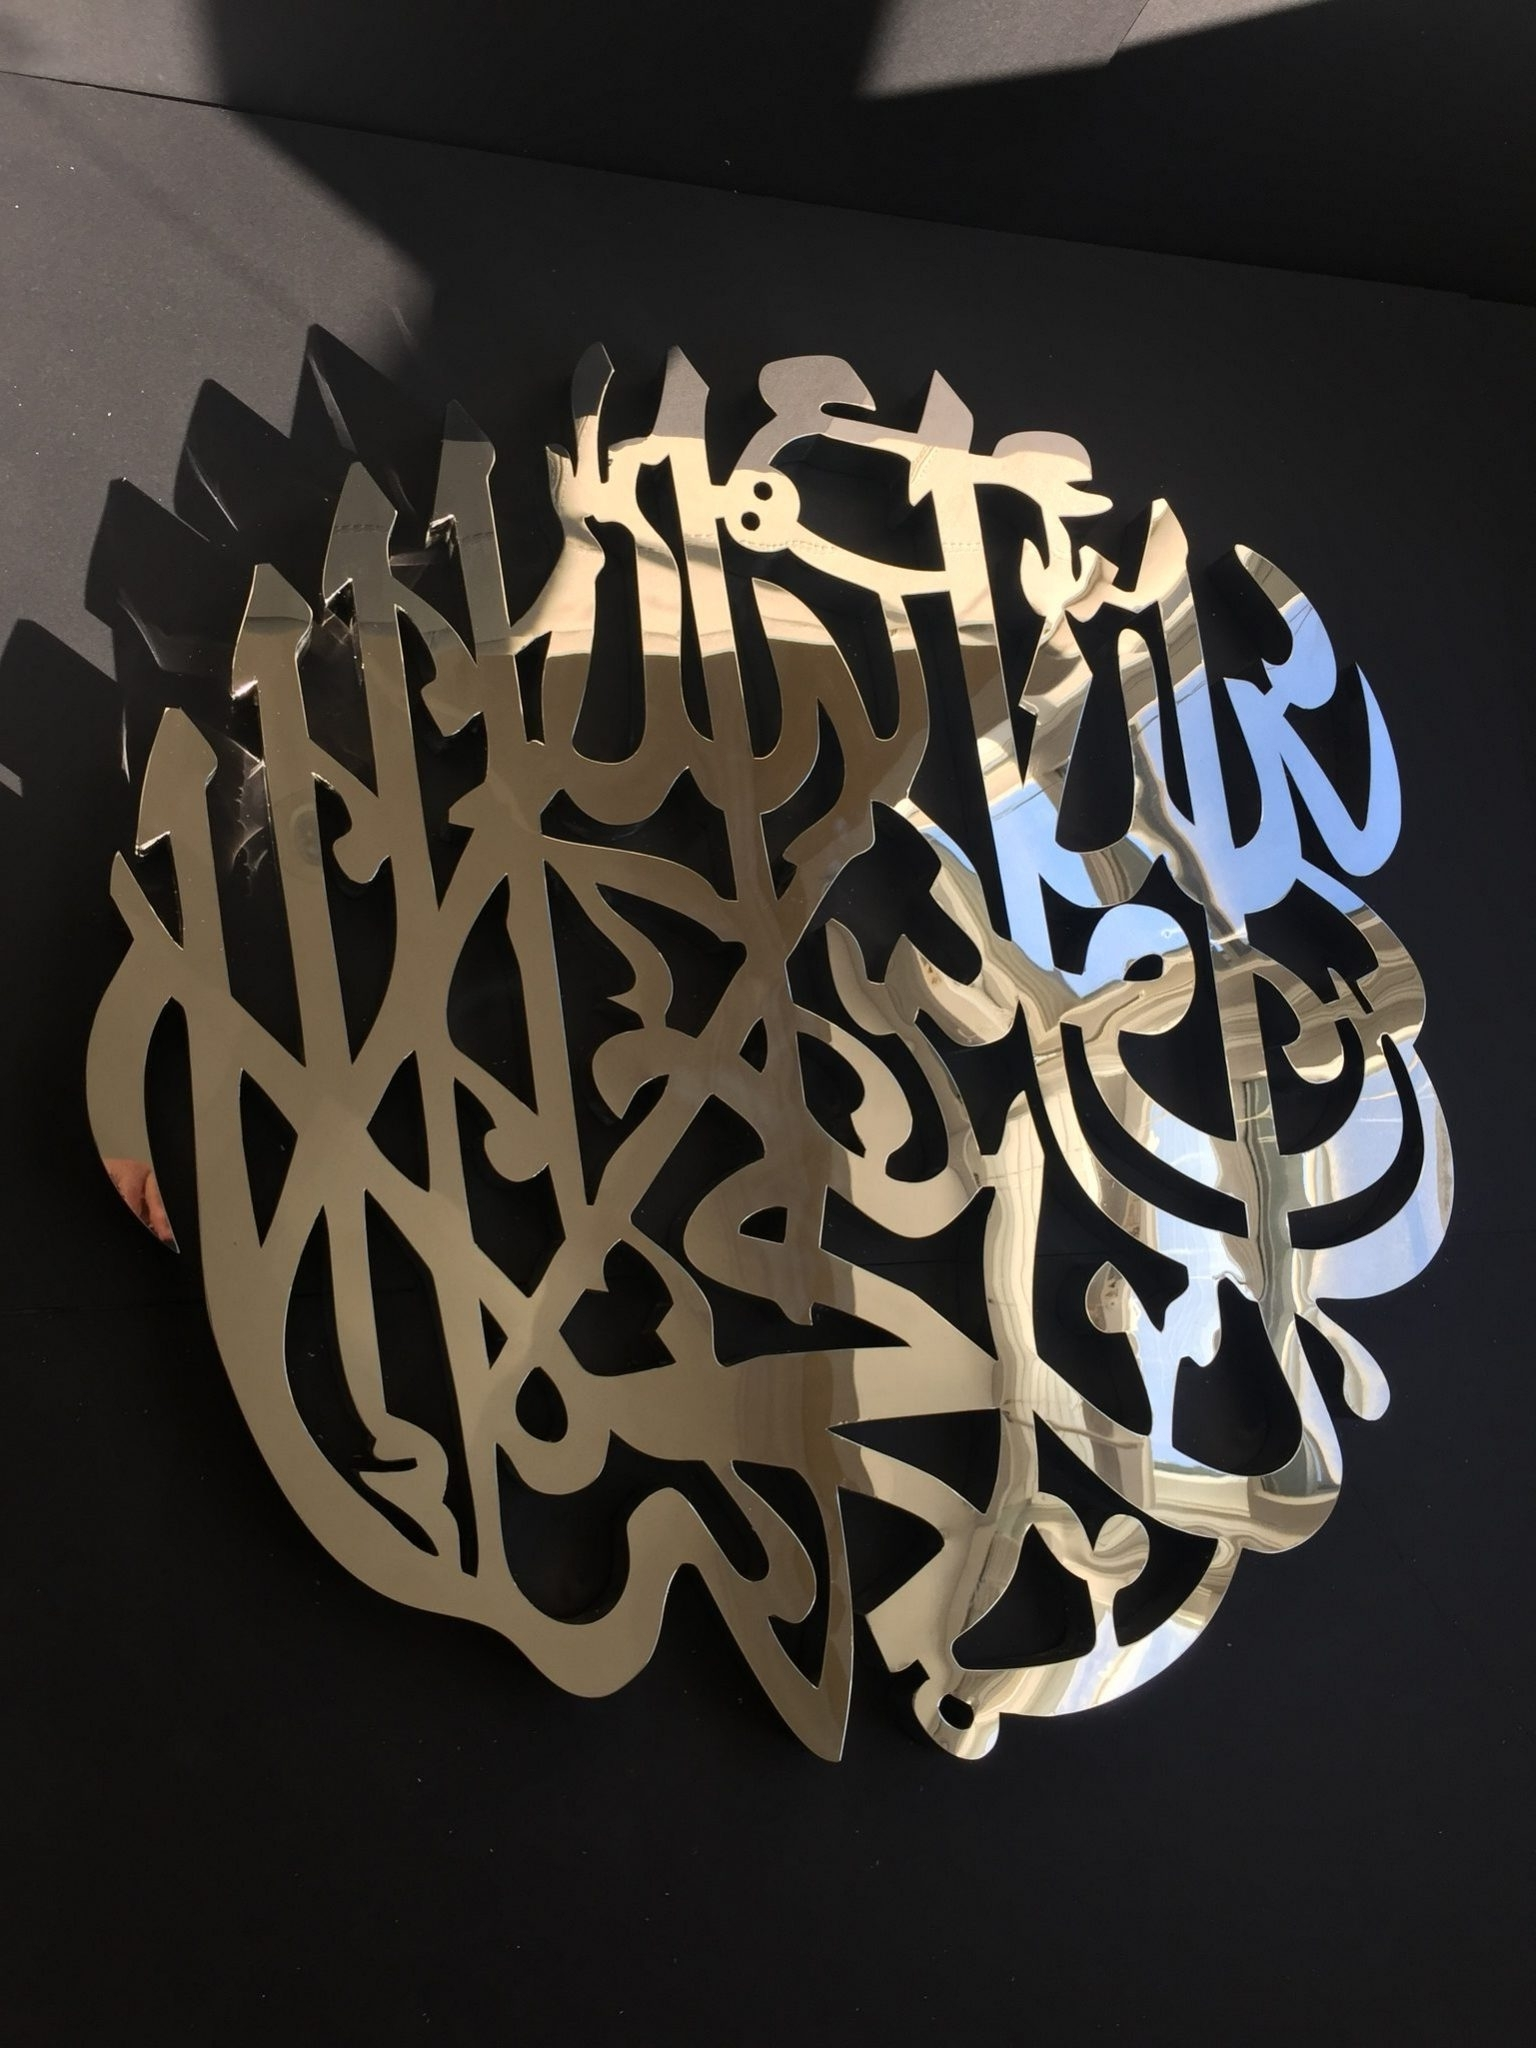 Shahada / Kalima  Modern Islamic Wall Art Calligraphy – Modern Within Best And Newest Islamic Wall Art (View 12 of 20)